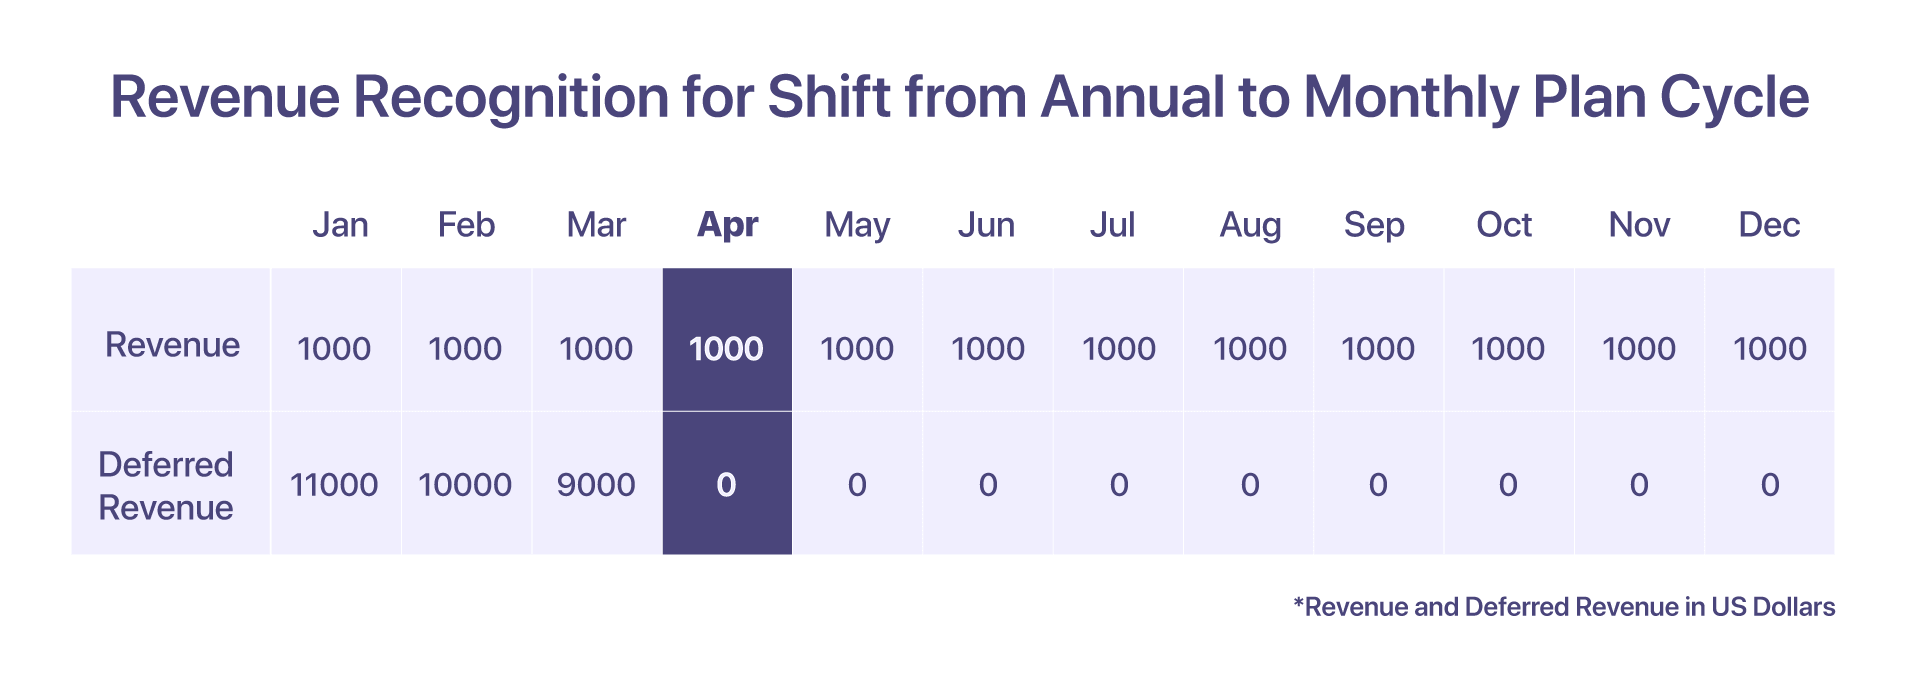 revenue recognition for shift in annual to monthly plan cycle